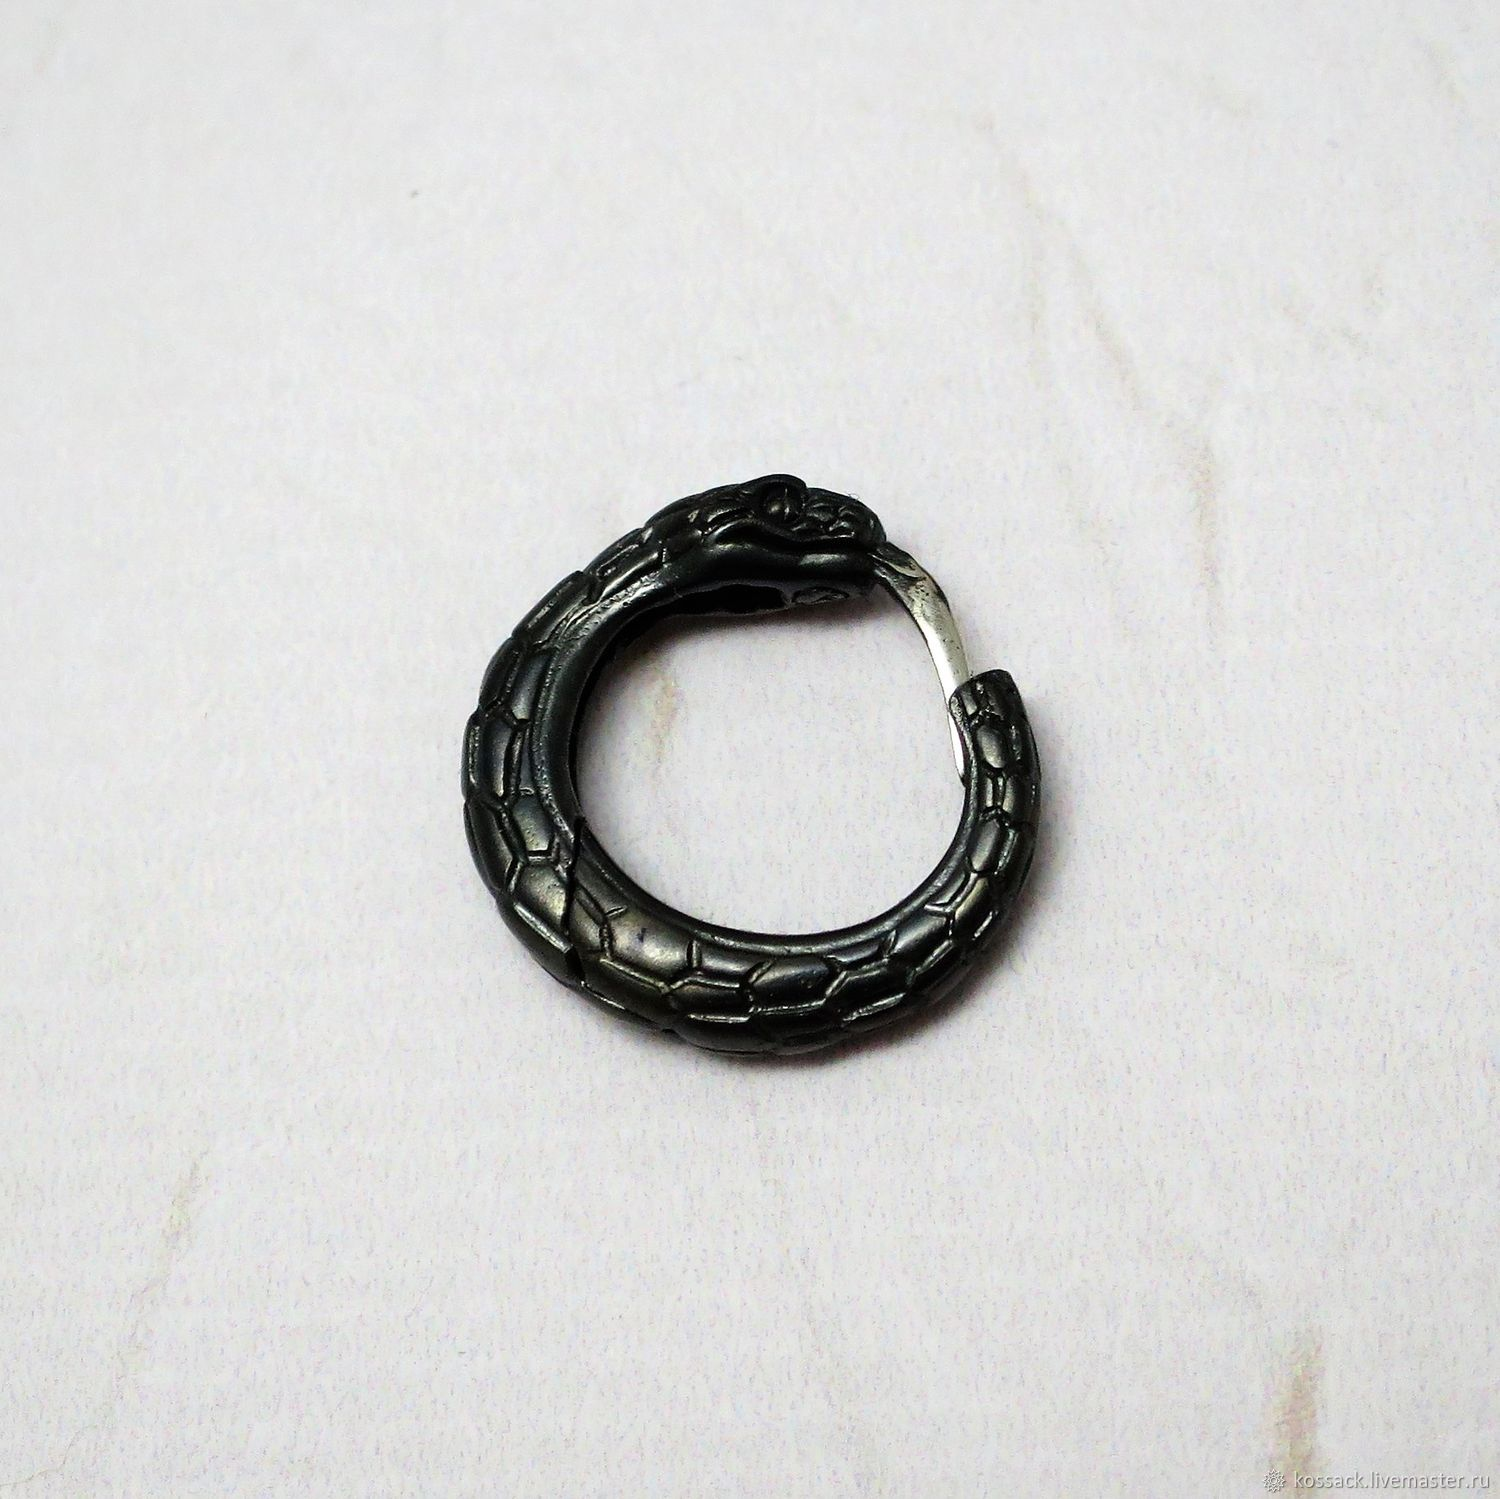 Copy of Ouroboros hoop earring for men, Earrings, Zaporozhye,  Фото №1